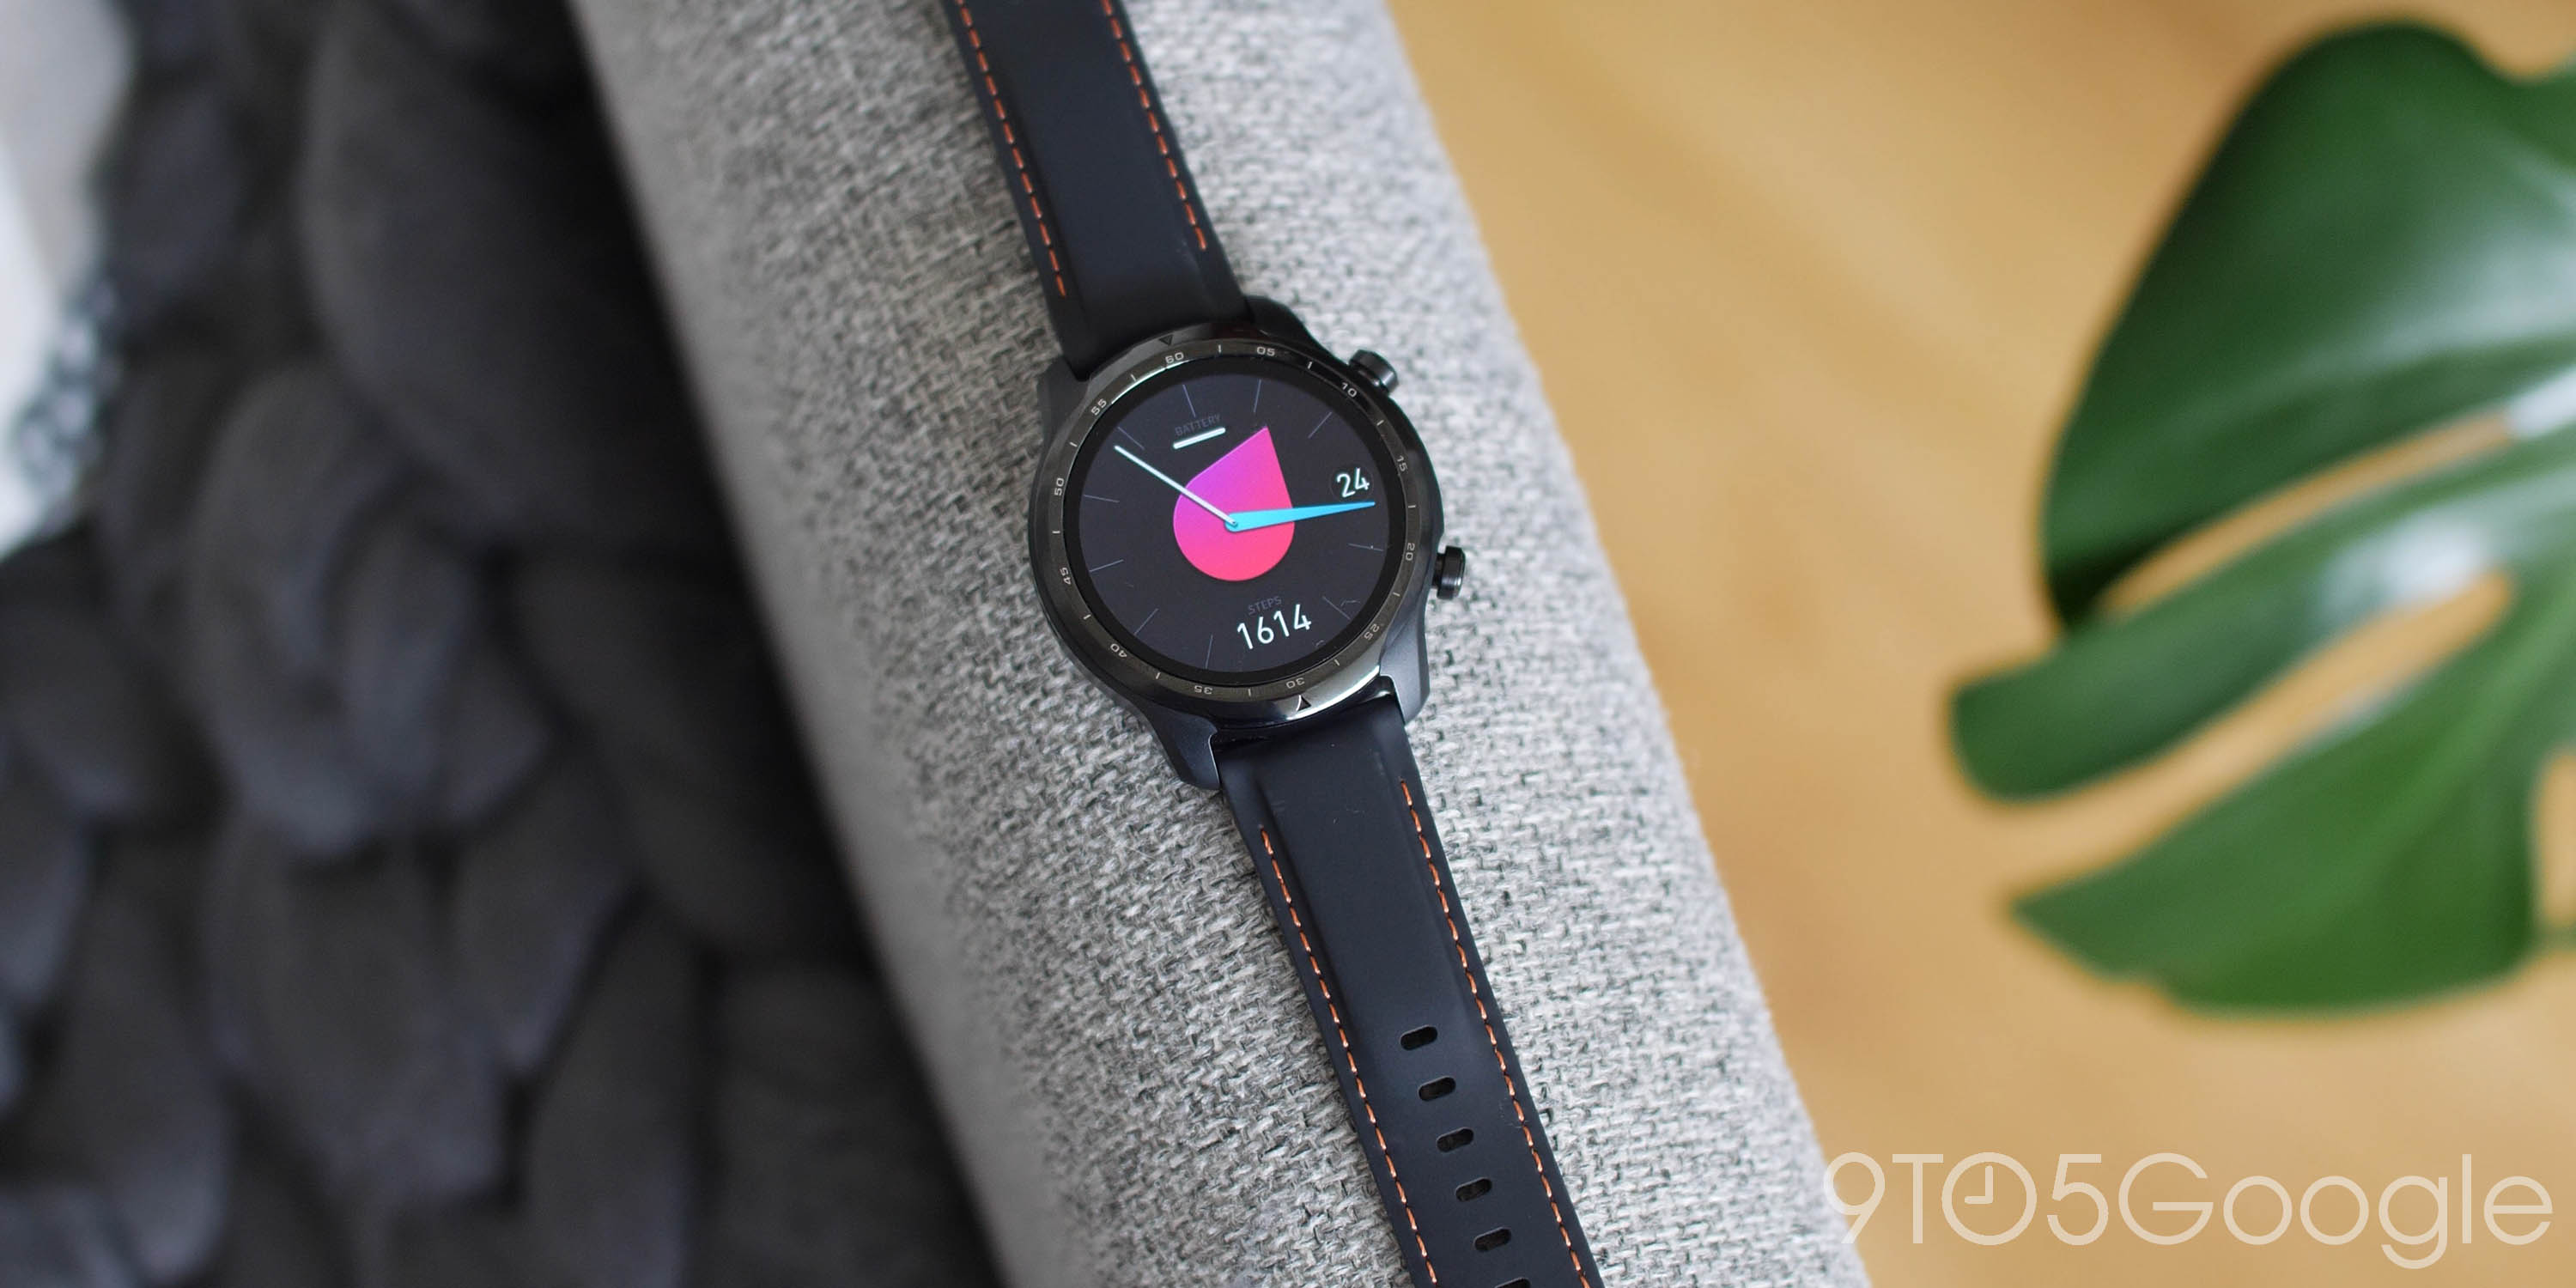 TicWatch Pro 3 first impressions: Notable internal upgrades to a familiar design [Video] - 9to5Google